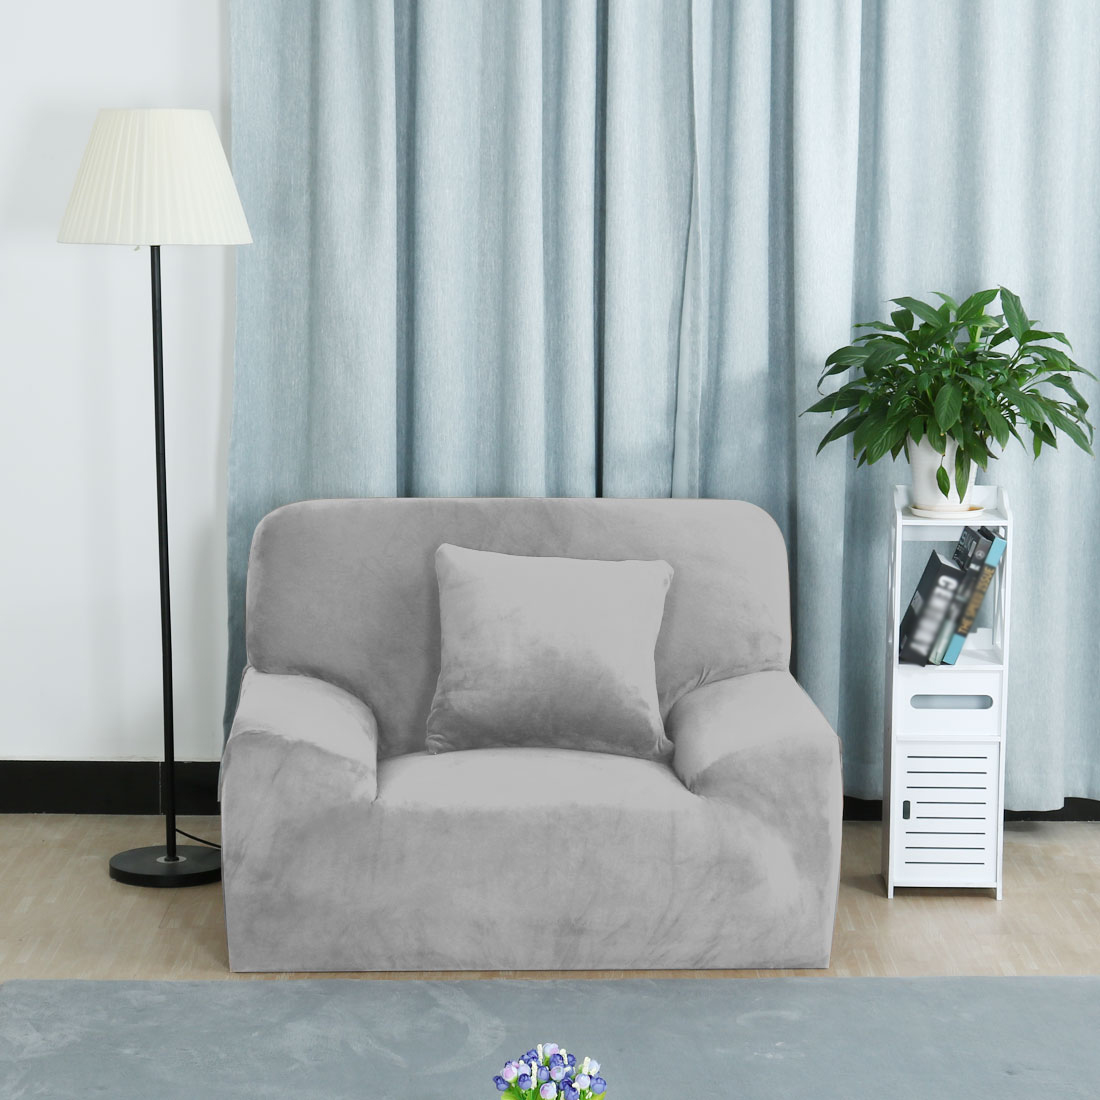 Stretch Sofa Slipcover Sofa Covers Chair Covers 1 Seater 35 55 Inch